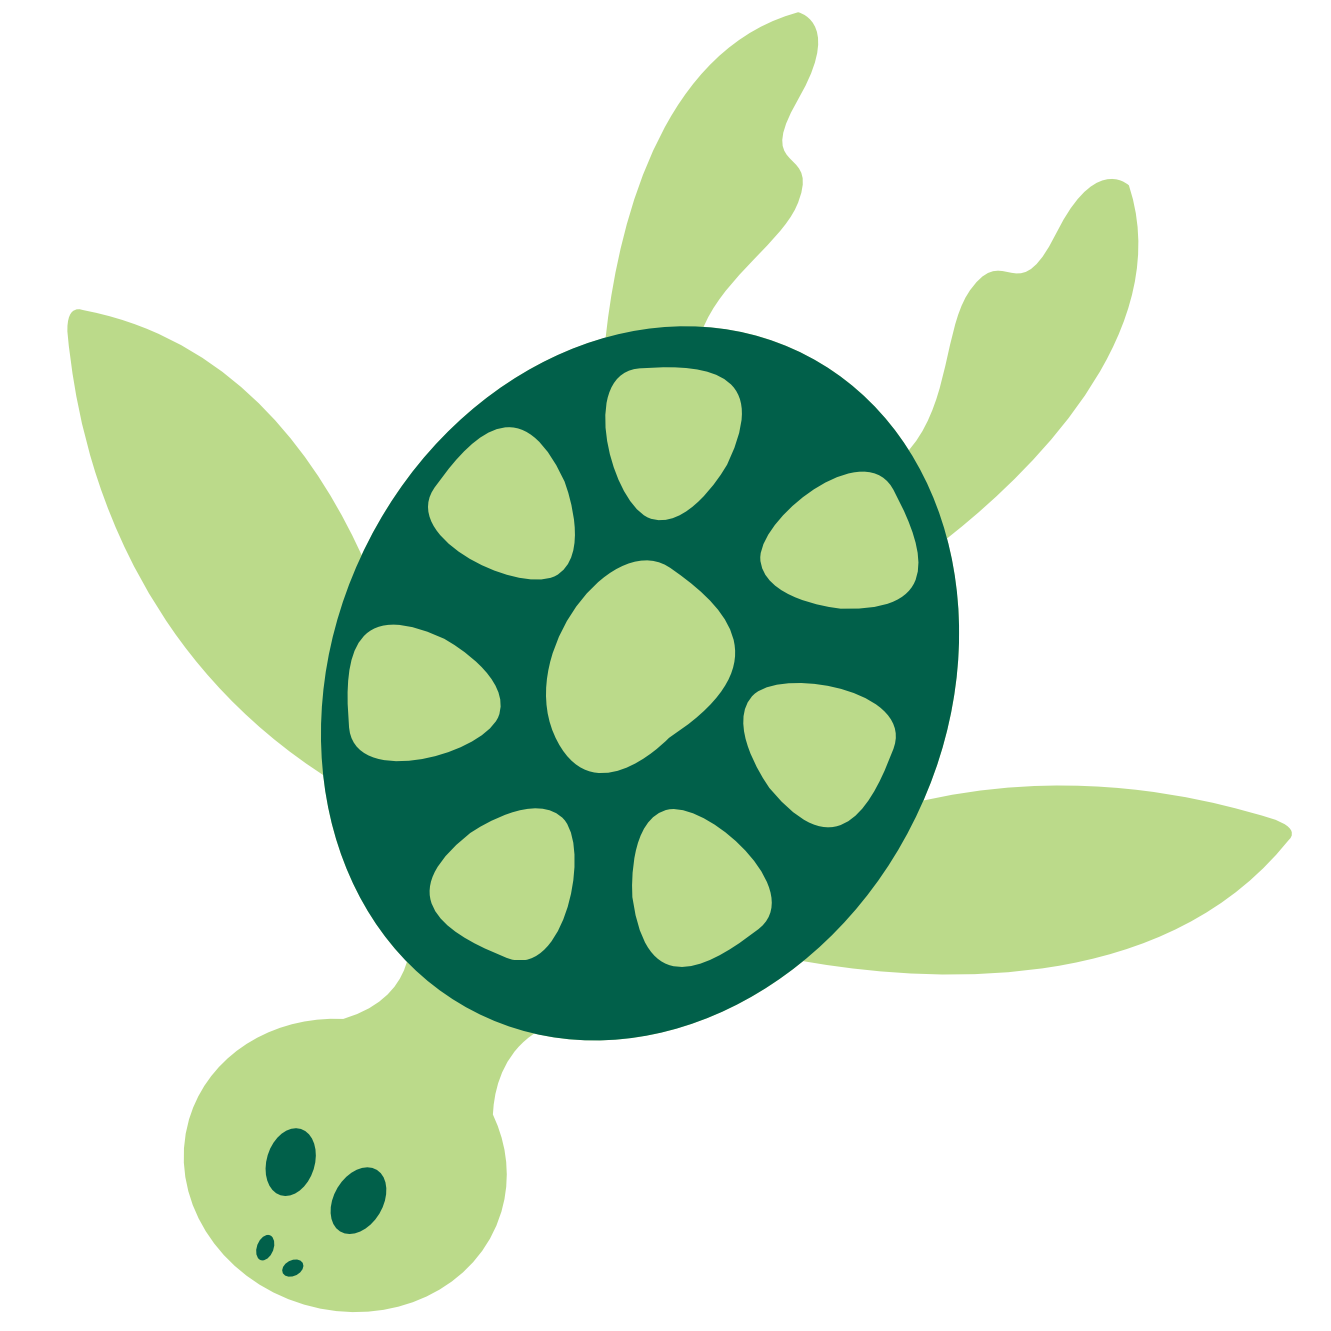 Cucumber clipart animated. Cartoon sea turtle clip